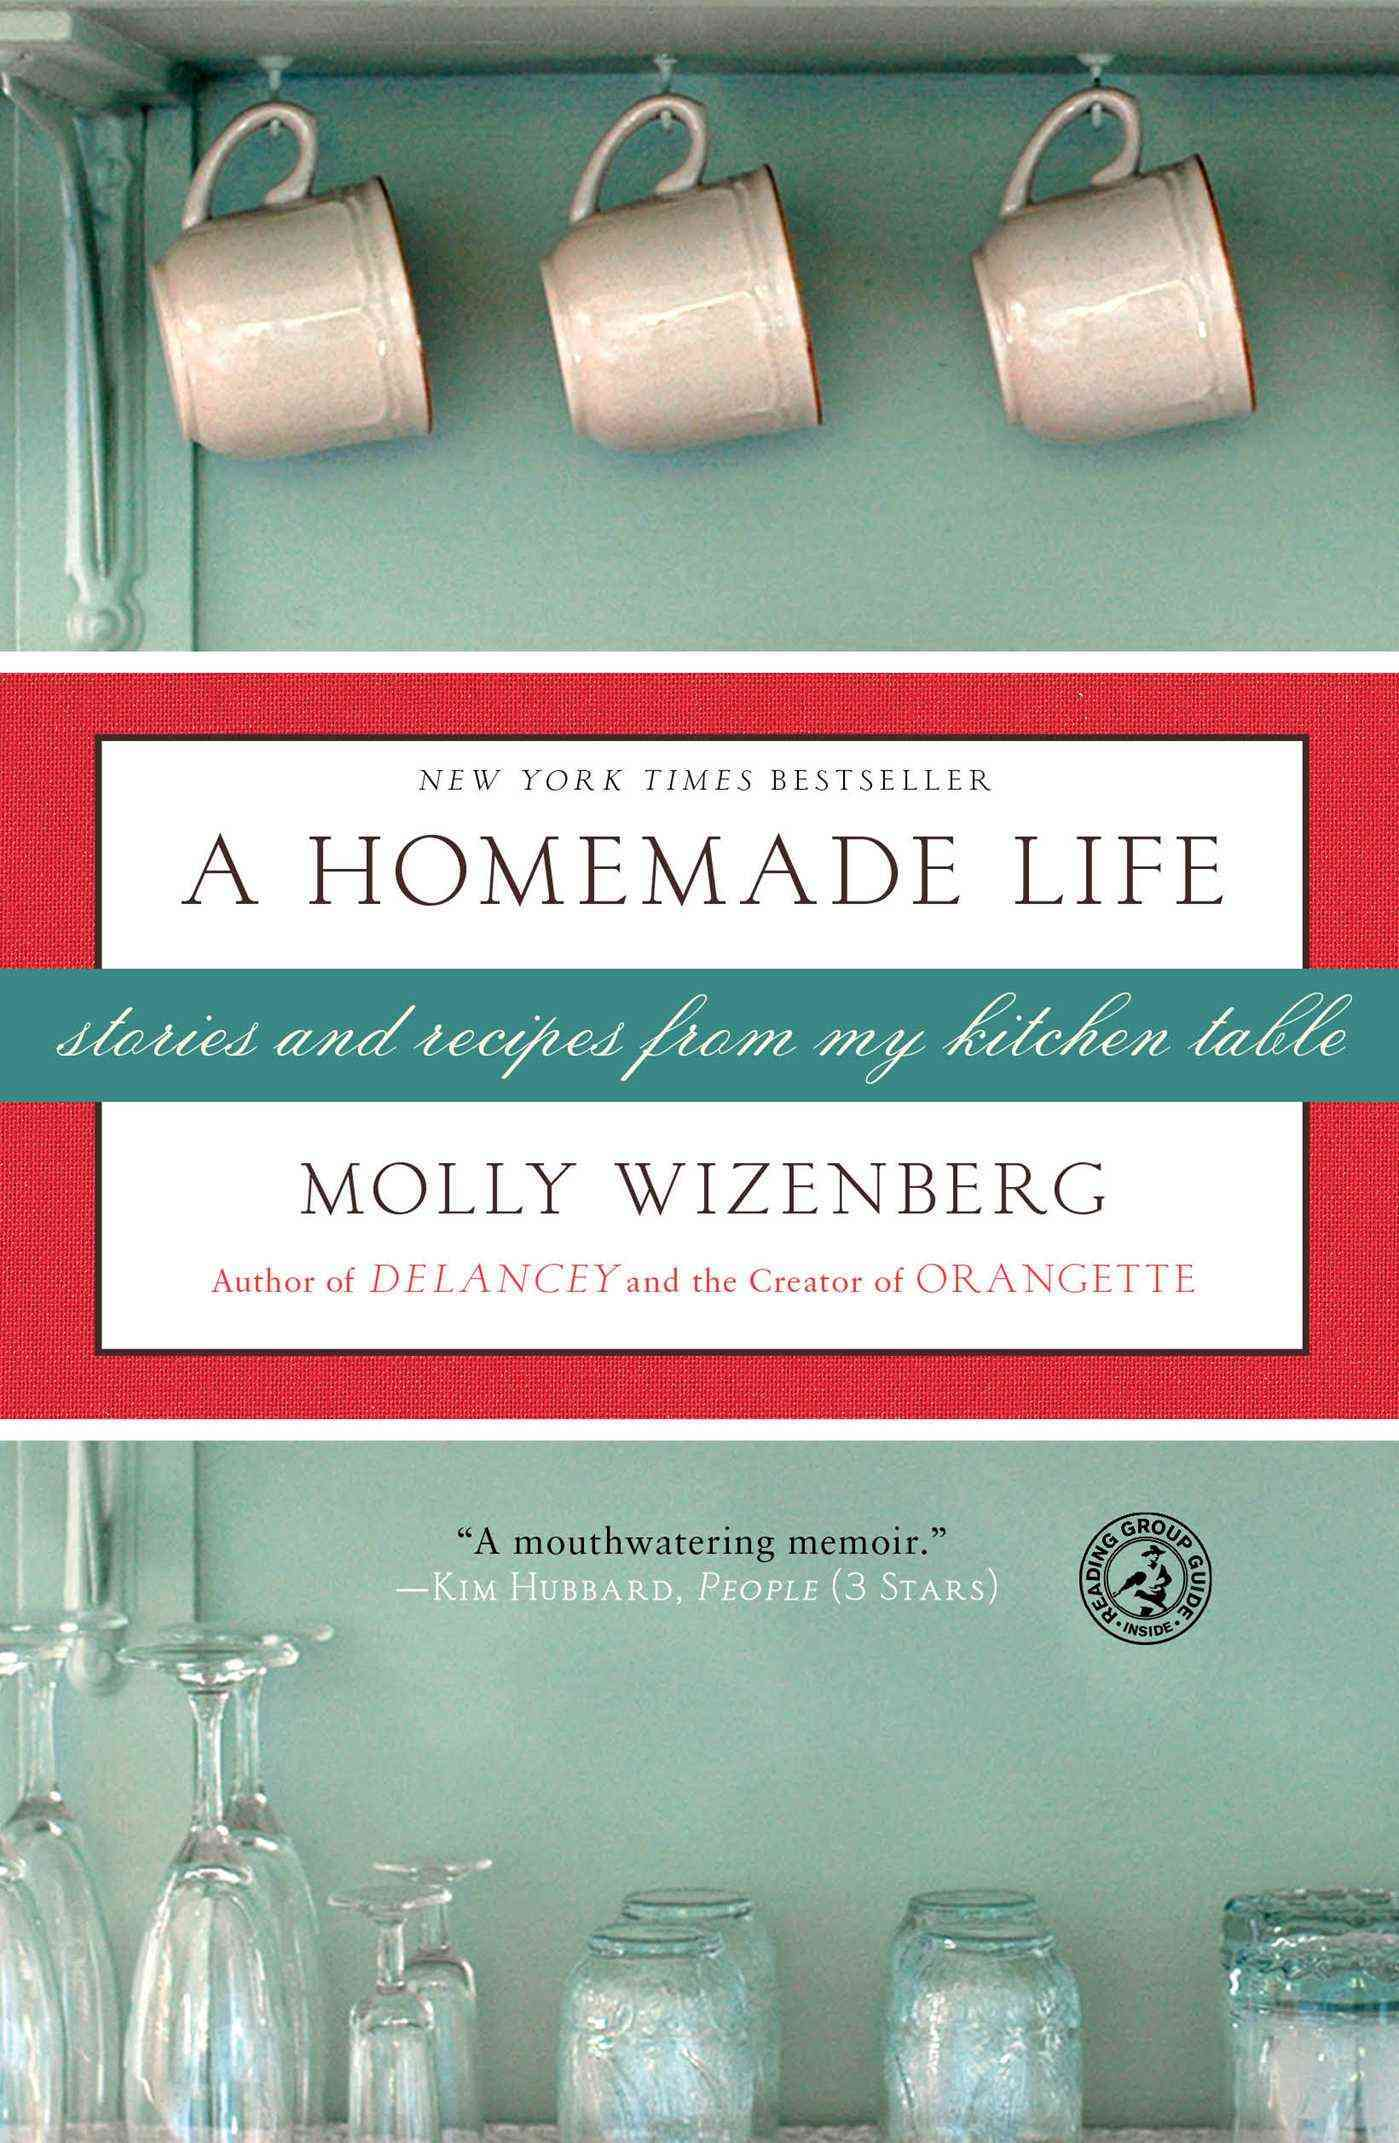 A Homemade Life: Stories and Recipes from My Kitchen Table (Paperback)